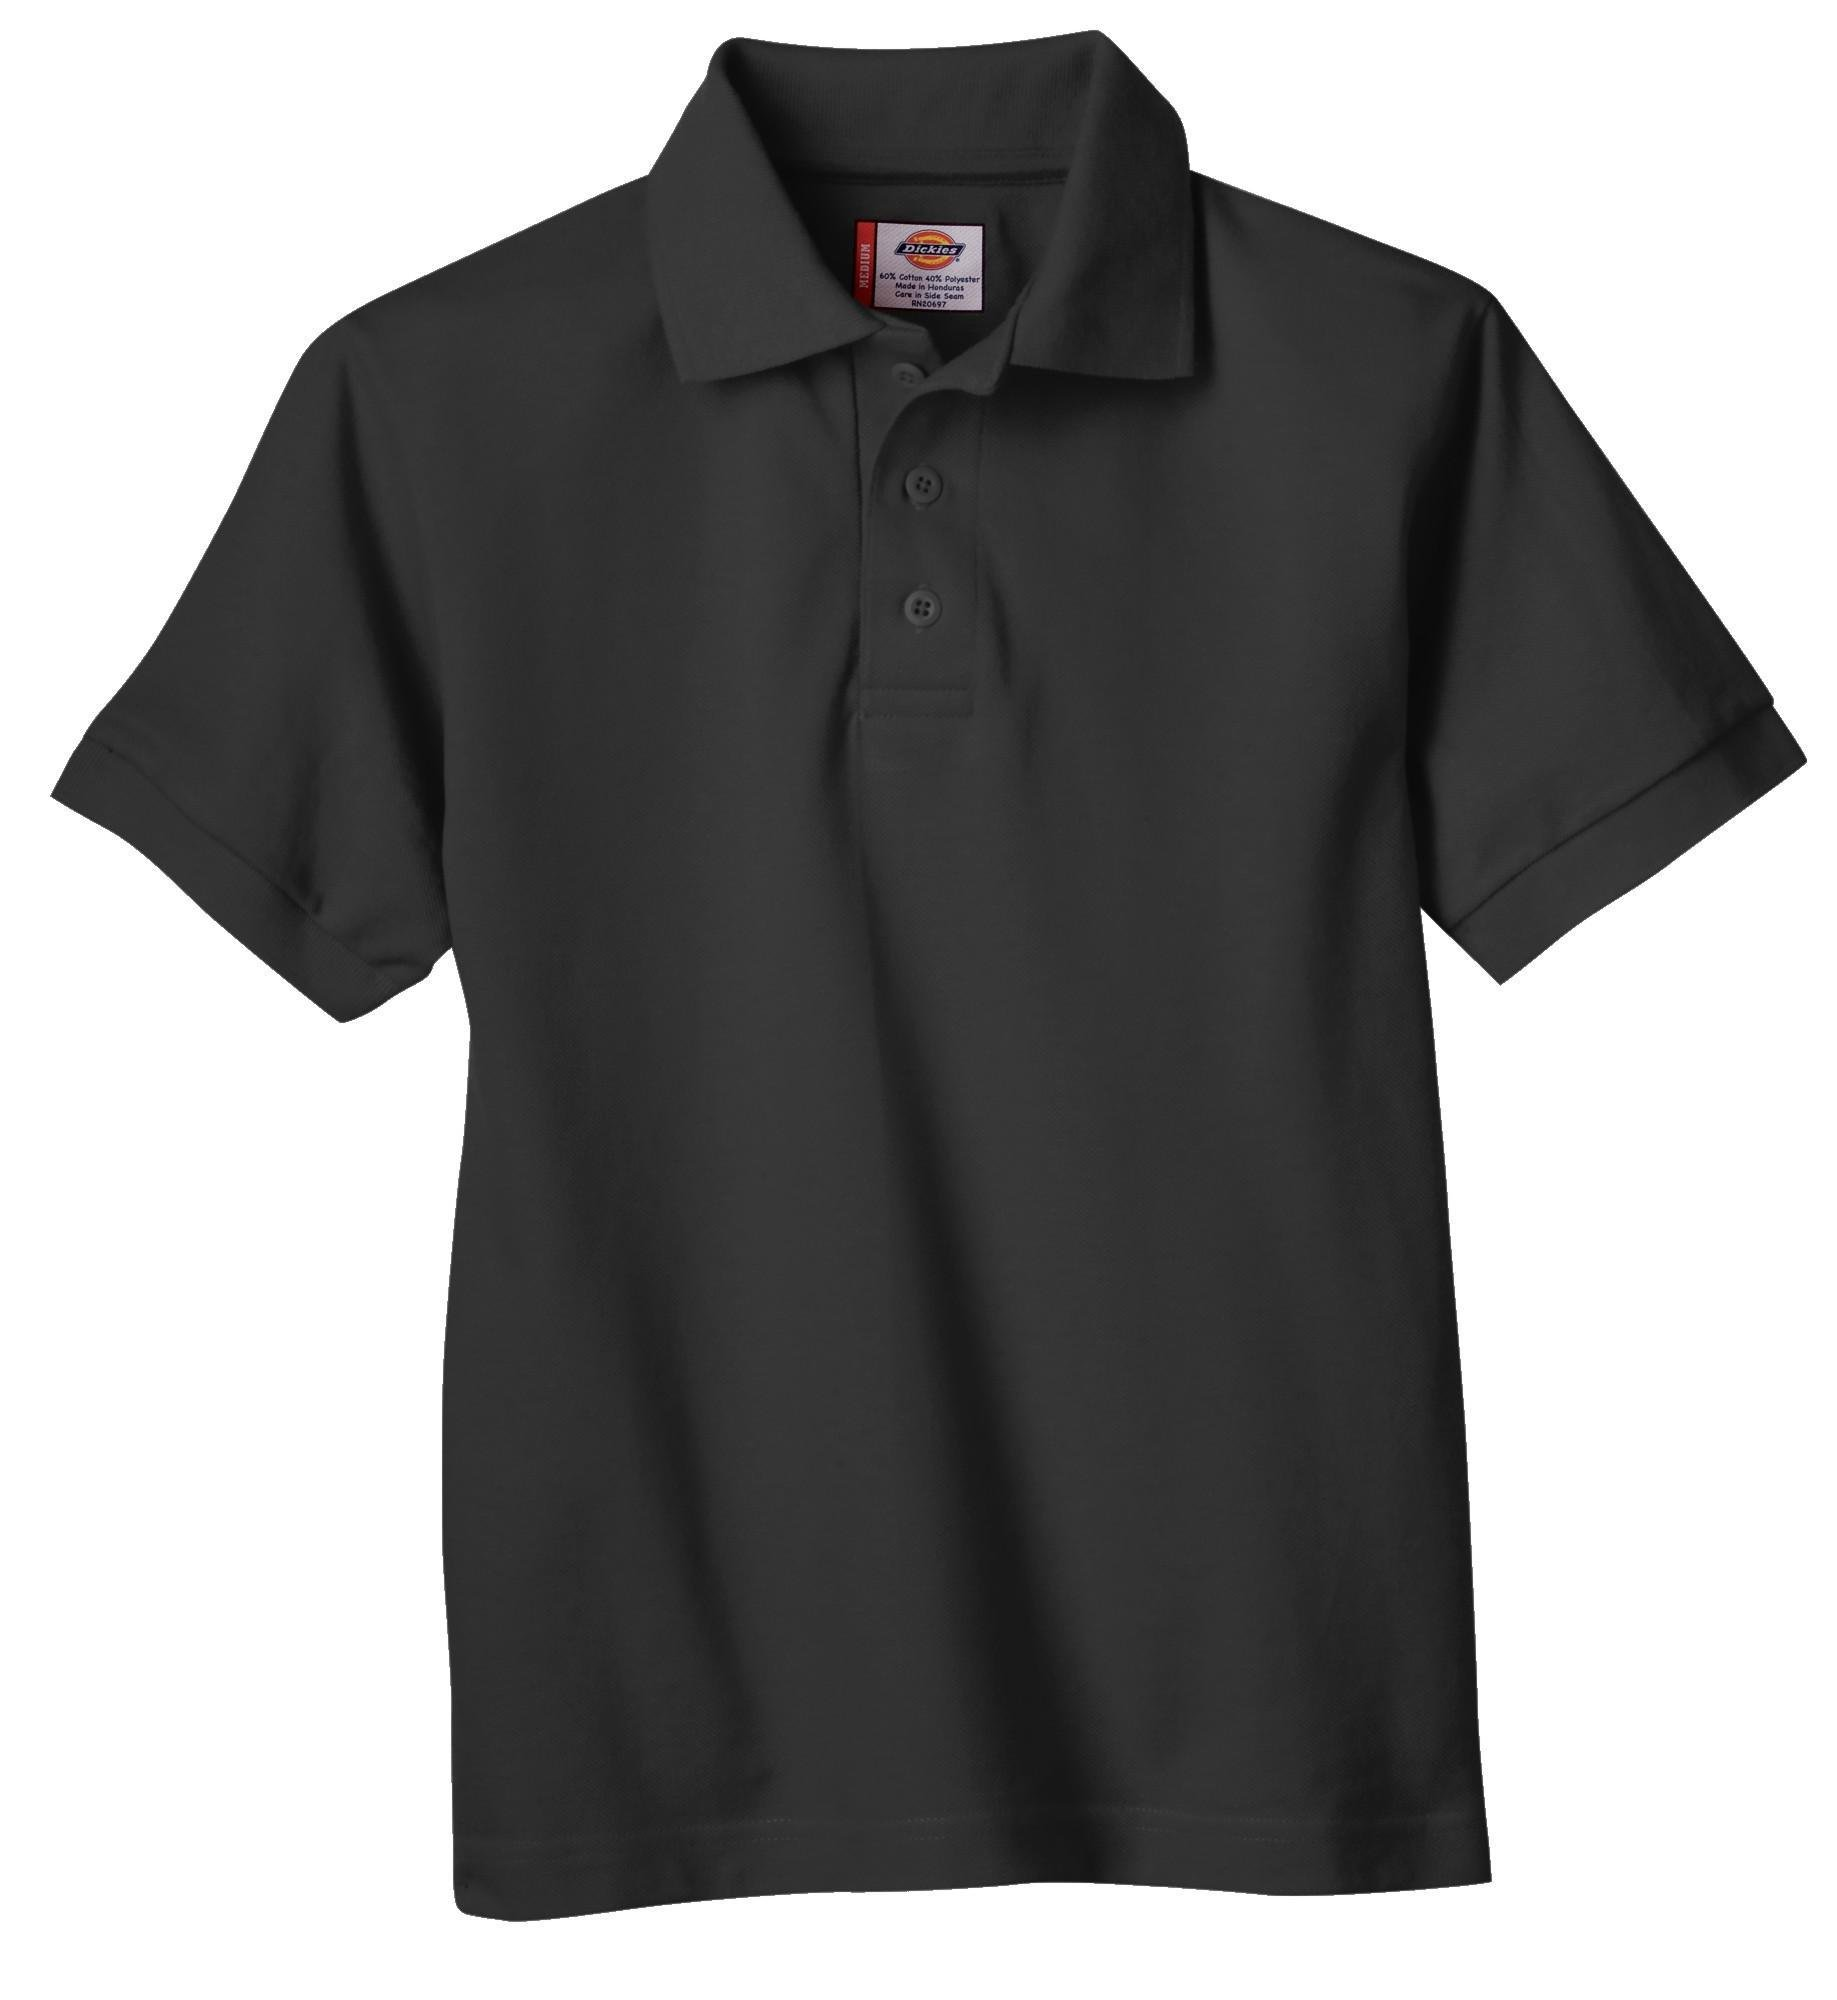 Dickies Little Boys' Short Sleeve Pique Polo Shirt, Black, Large